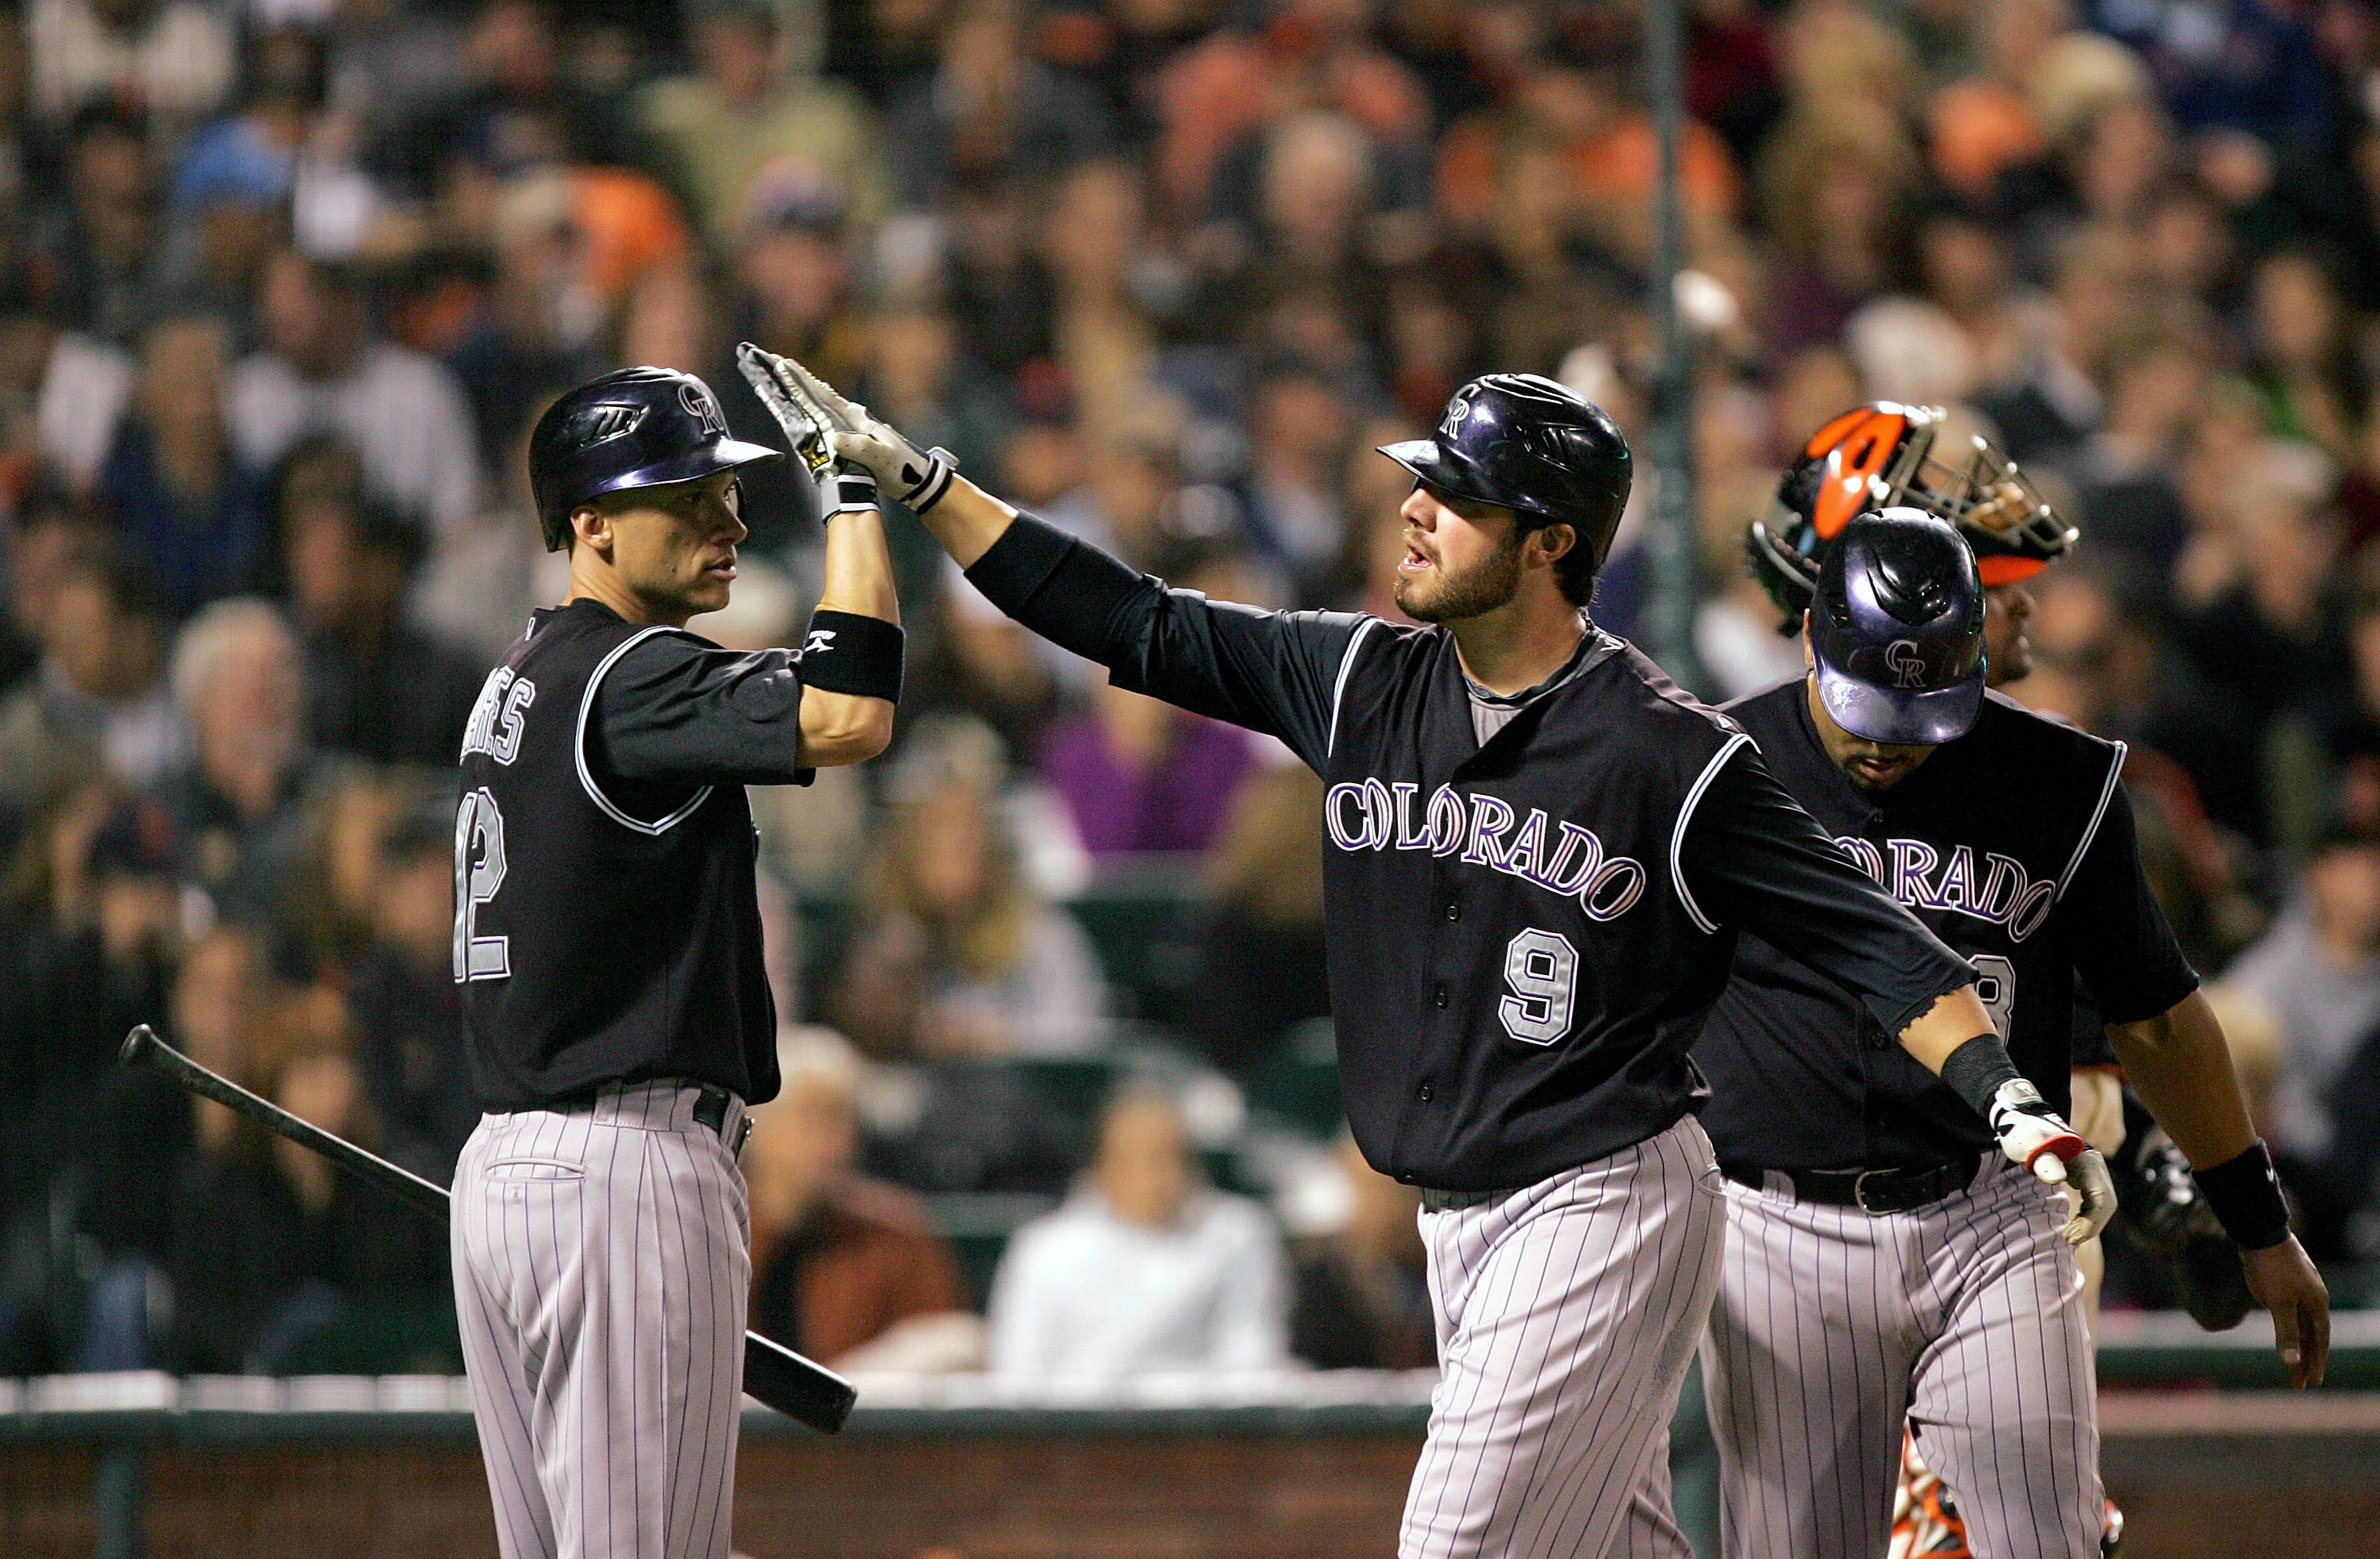 SAN FRANCISCO - SEPTEMBER 16:  Ian Stewart #9 of the Colorado Rockies is congratulated by Clint Barmes #12 after he hit a two-run home run to give the Rockies a 4-0 lead over the San Francisco Giants in the sixth inning of their game at AT&T Park on Septe